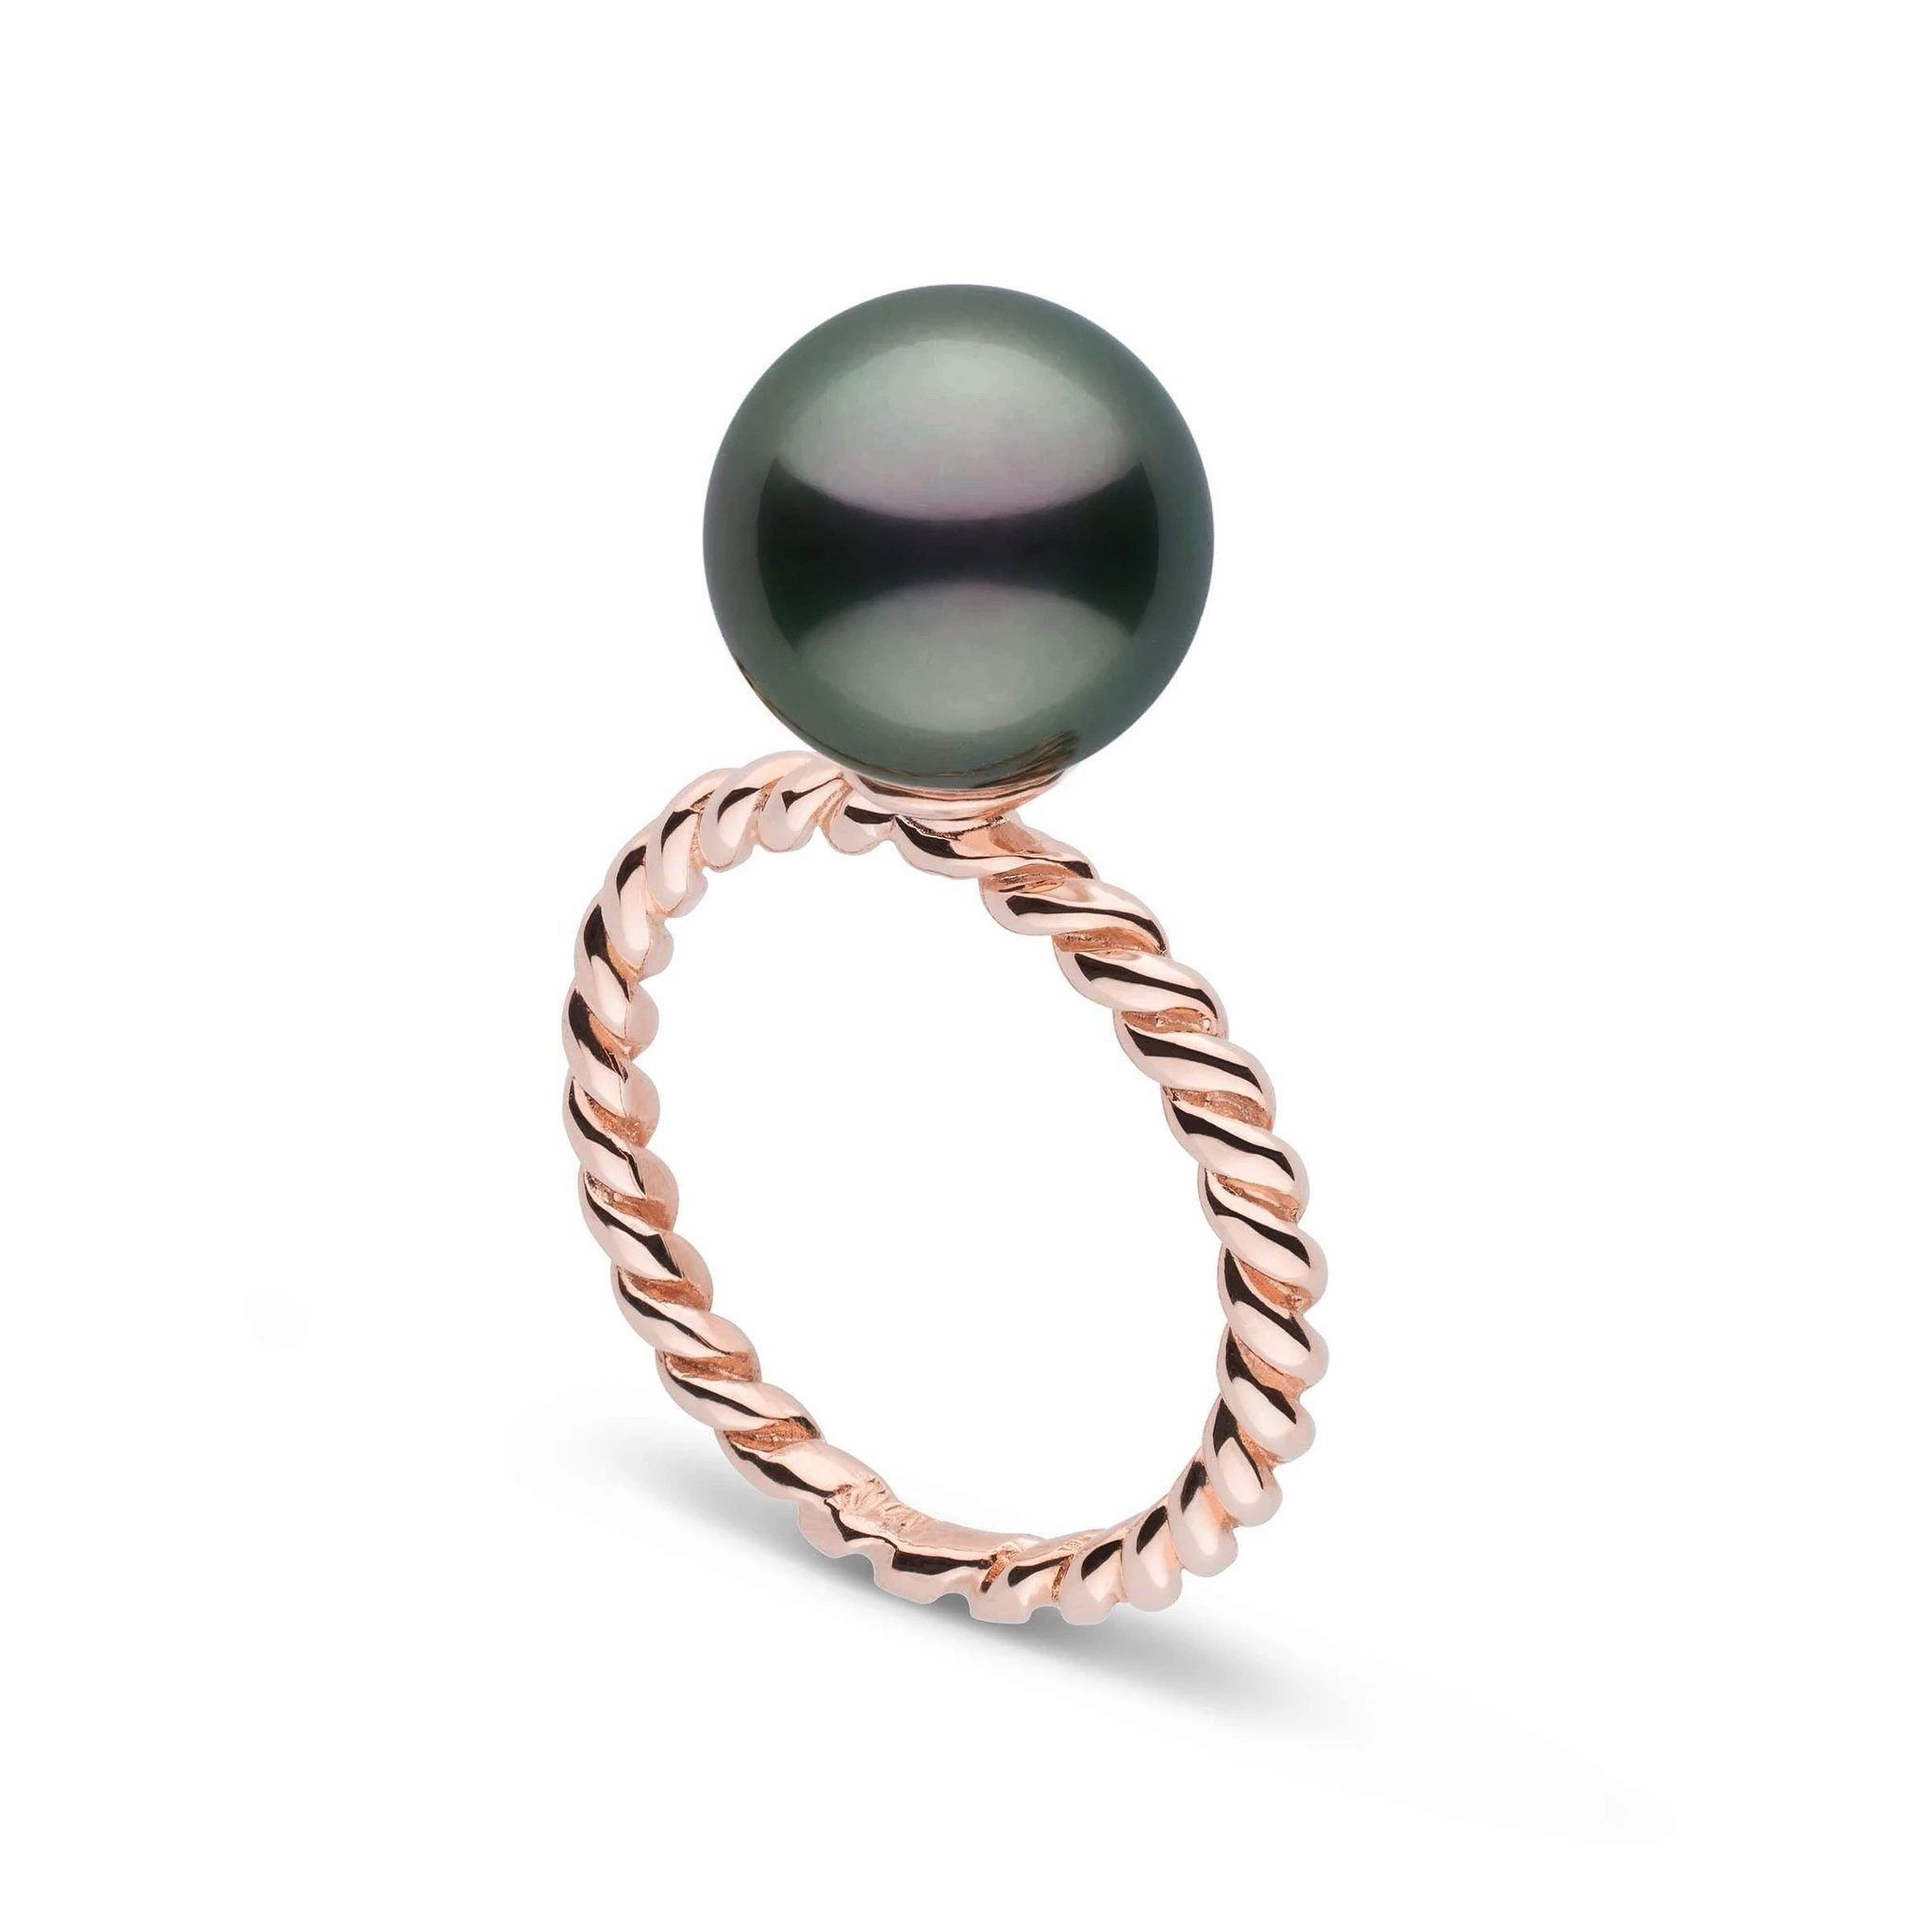 Twist Collection 10.0-11.0 mm Tahitian Pearl Ring - Rose Gold